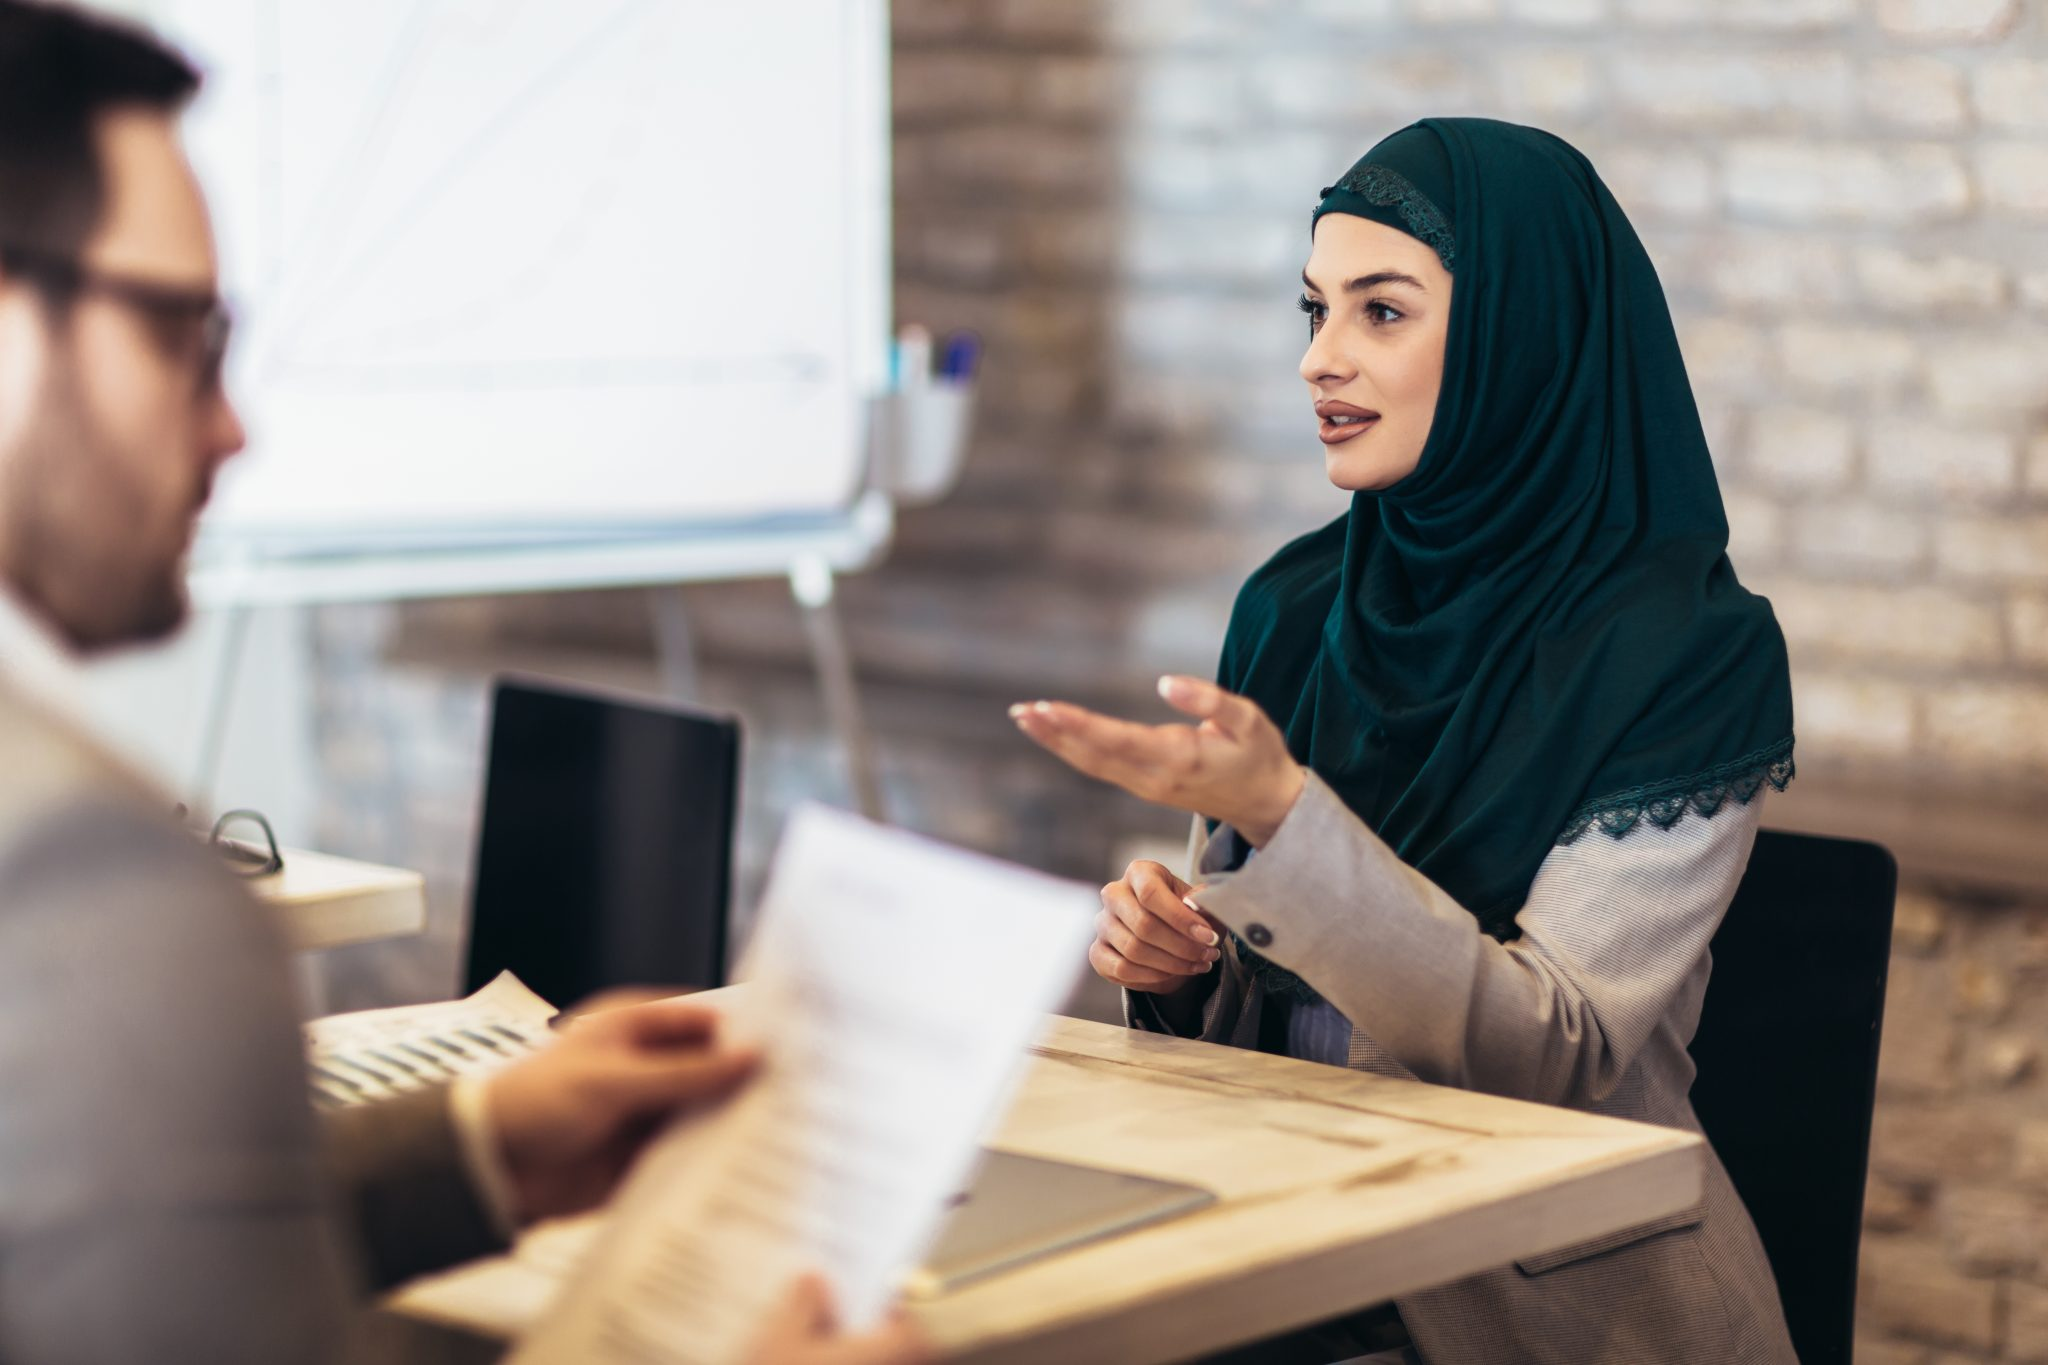 Young Muslim woman at a job interview